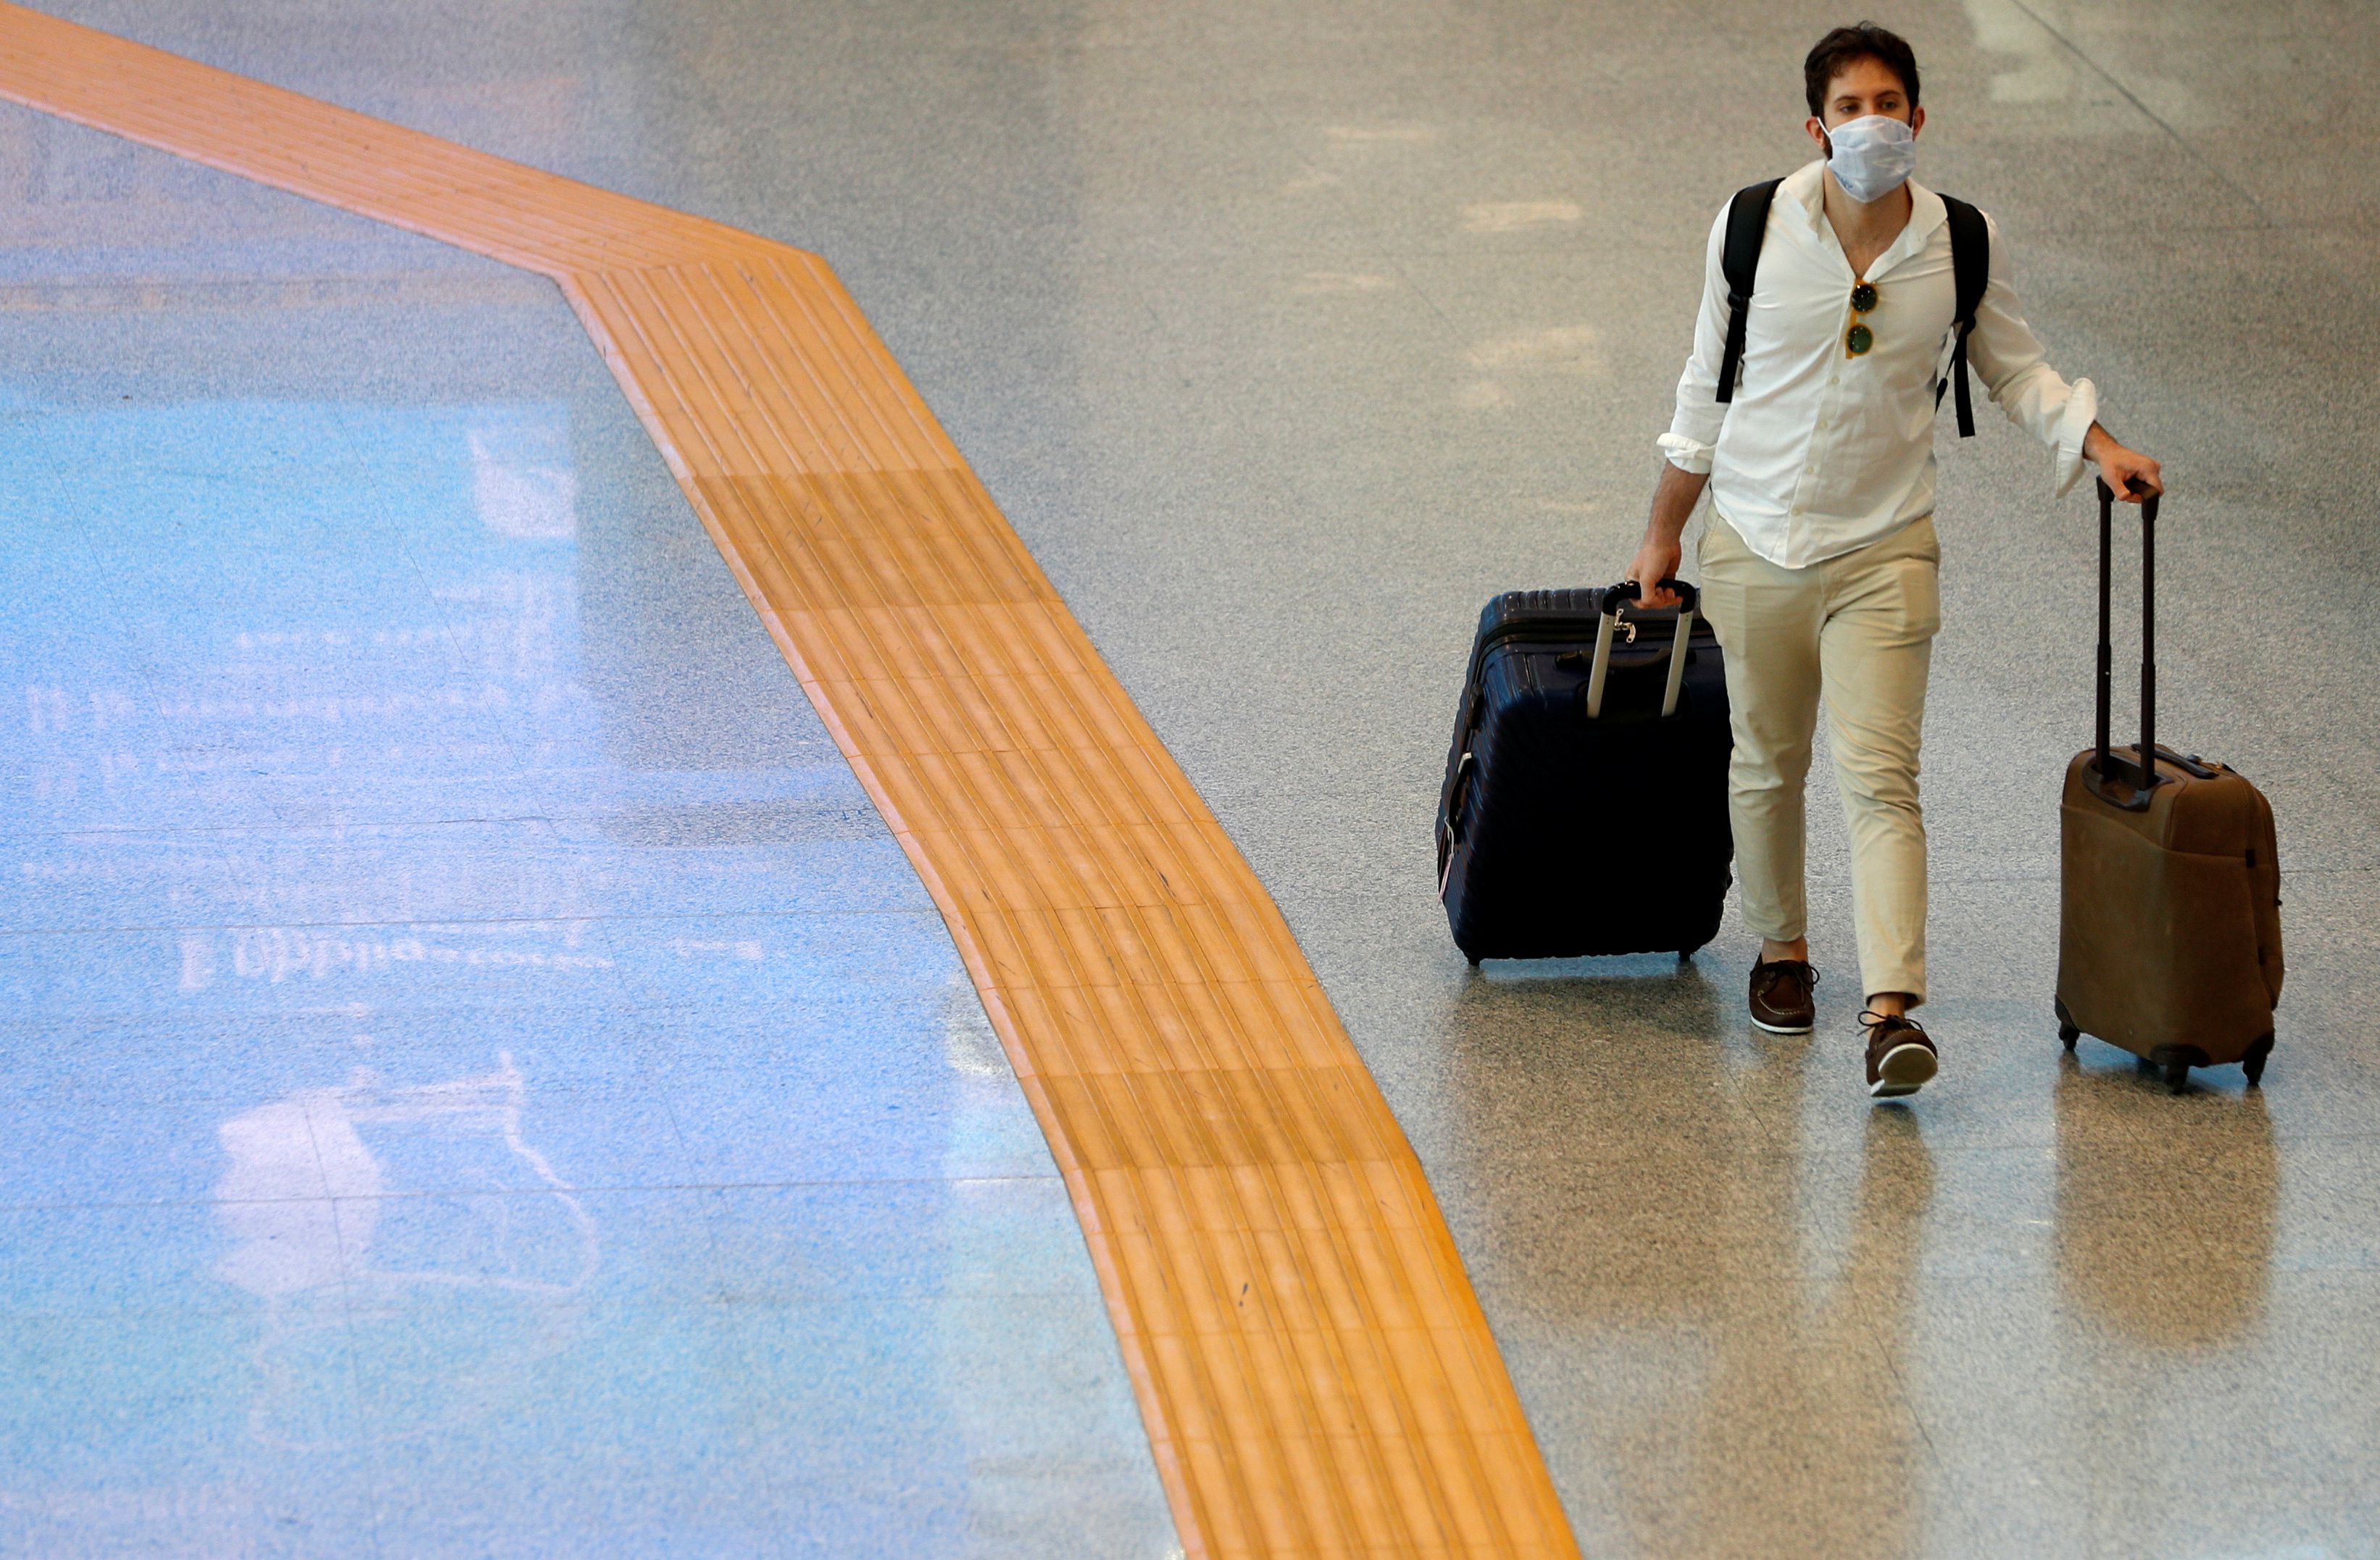 A passenger wearing a protective face mask walks at Fiumicino Airport in Rome, Italy, May 28, 2020. REUTERS/Guglielmo Mangiapane